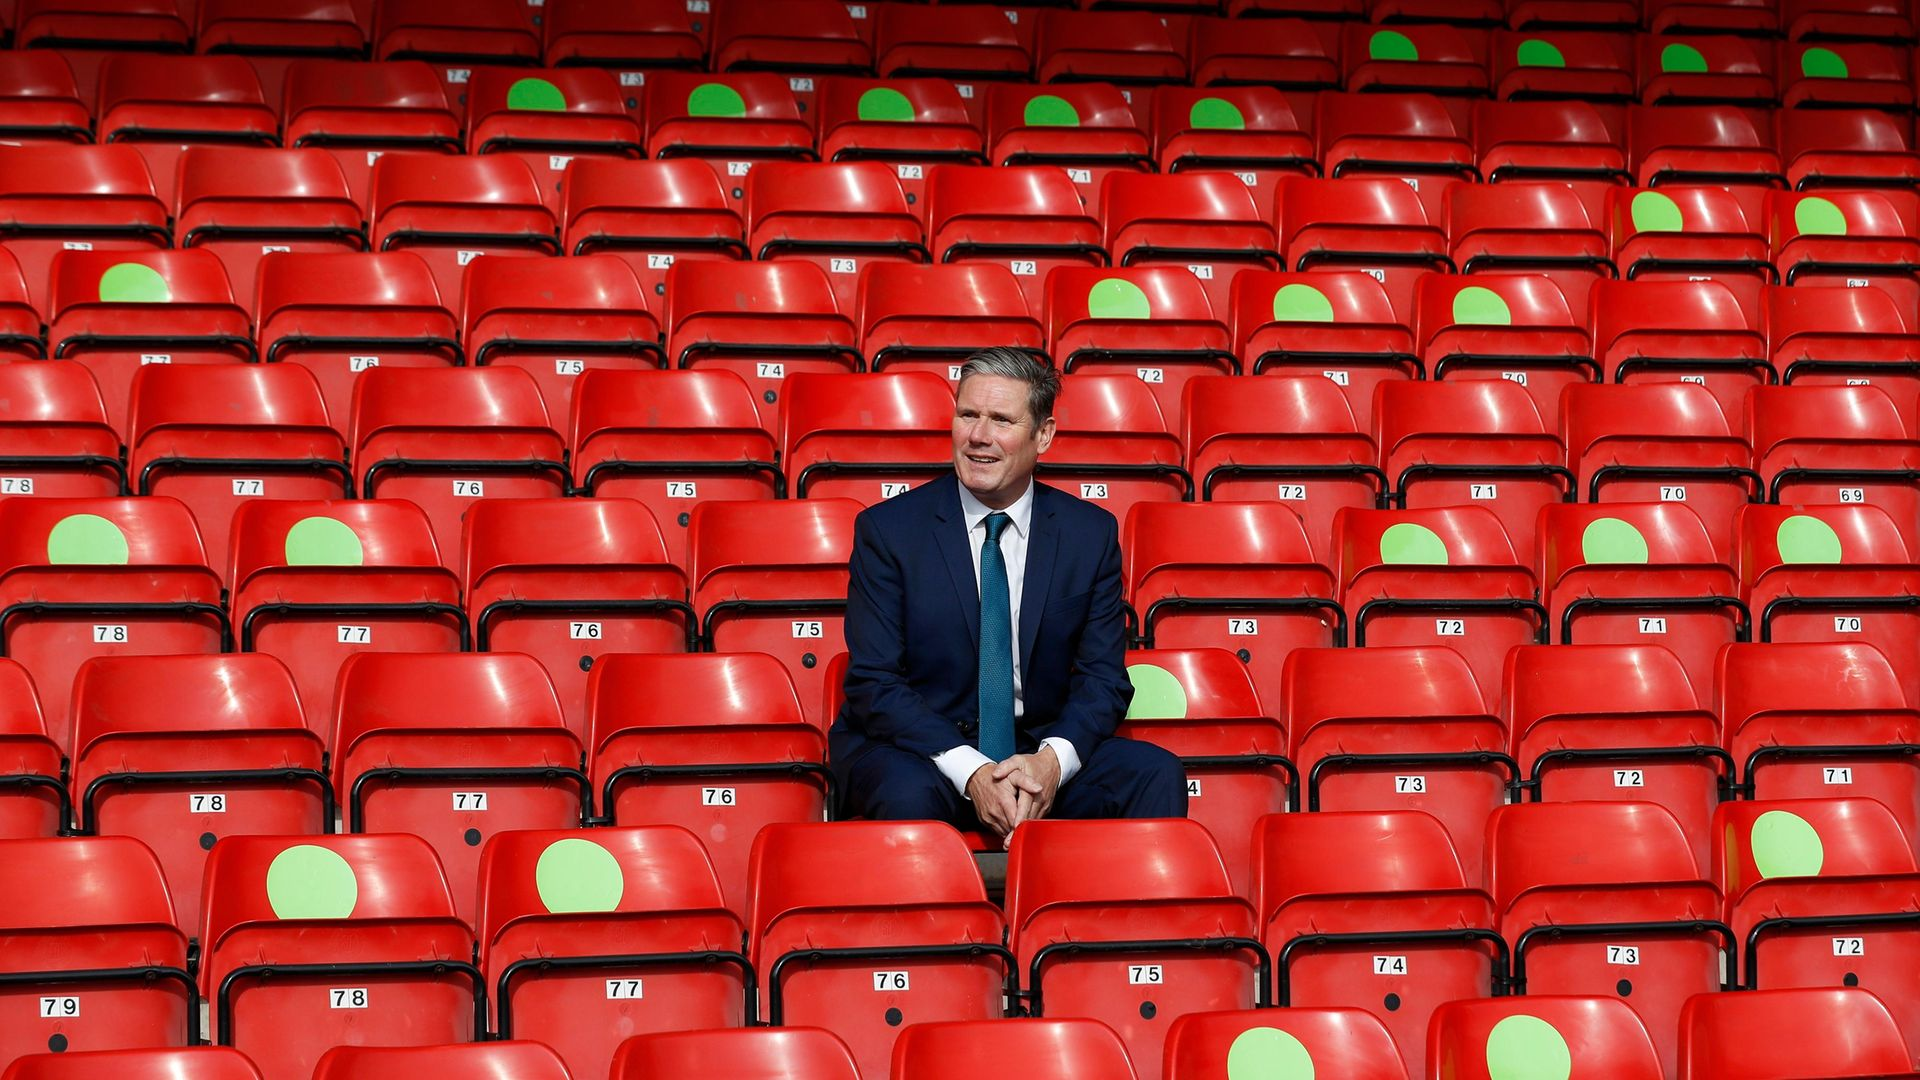 Labour Leader Keir Starmer sits in social distanced seating during a visit of Walsall Football Club - Credit: Getty Images